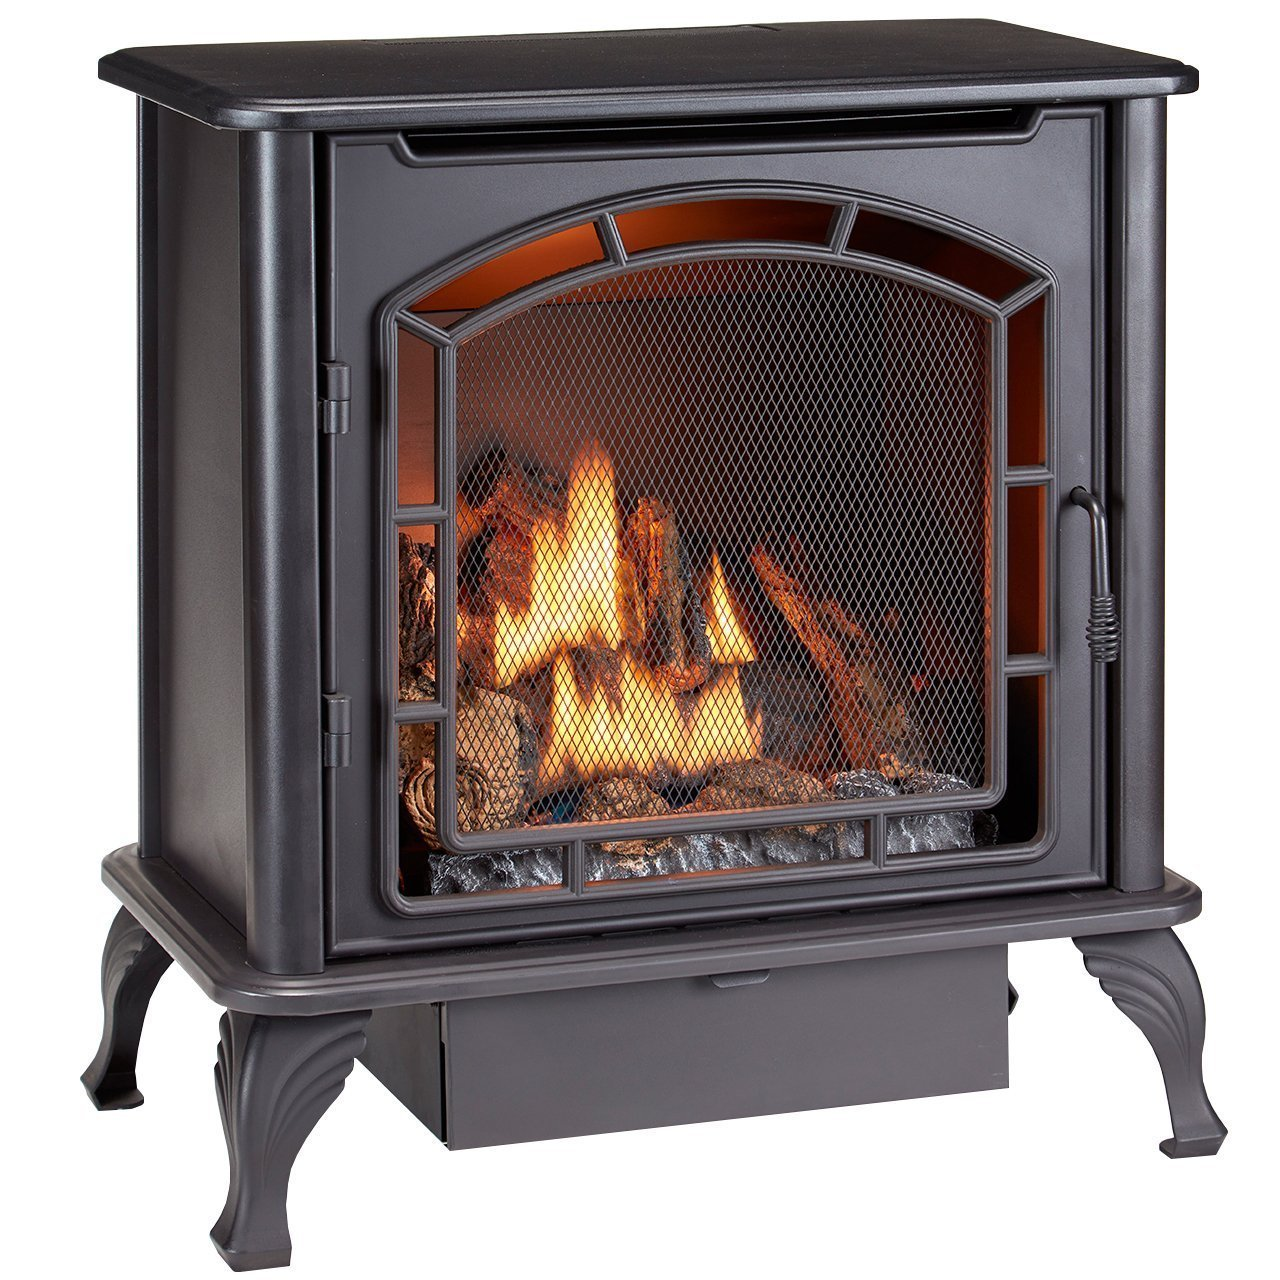 Duluth Forge DF25SMS Dual Fuel Vent Free Gas Stove, Black by Duluth Forge